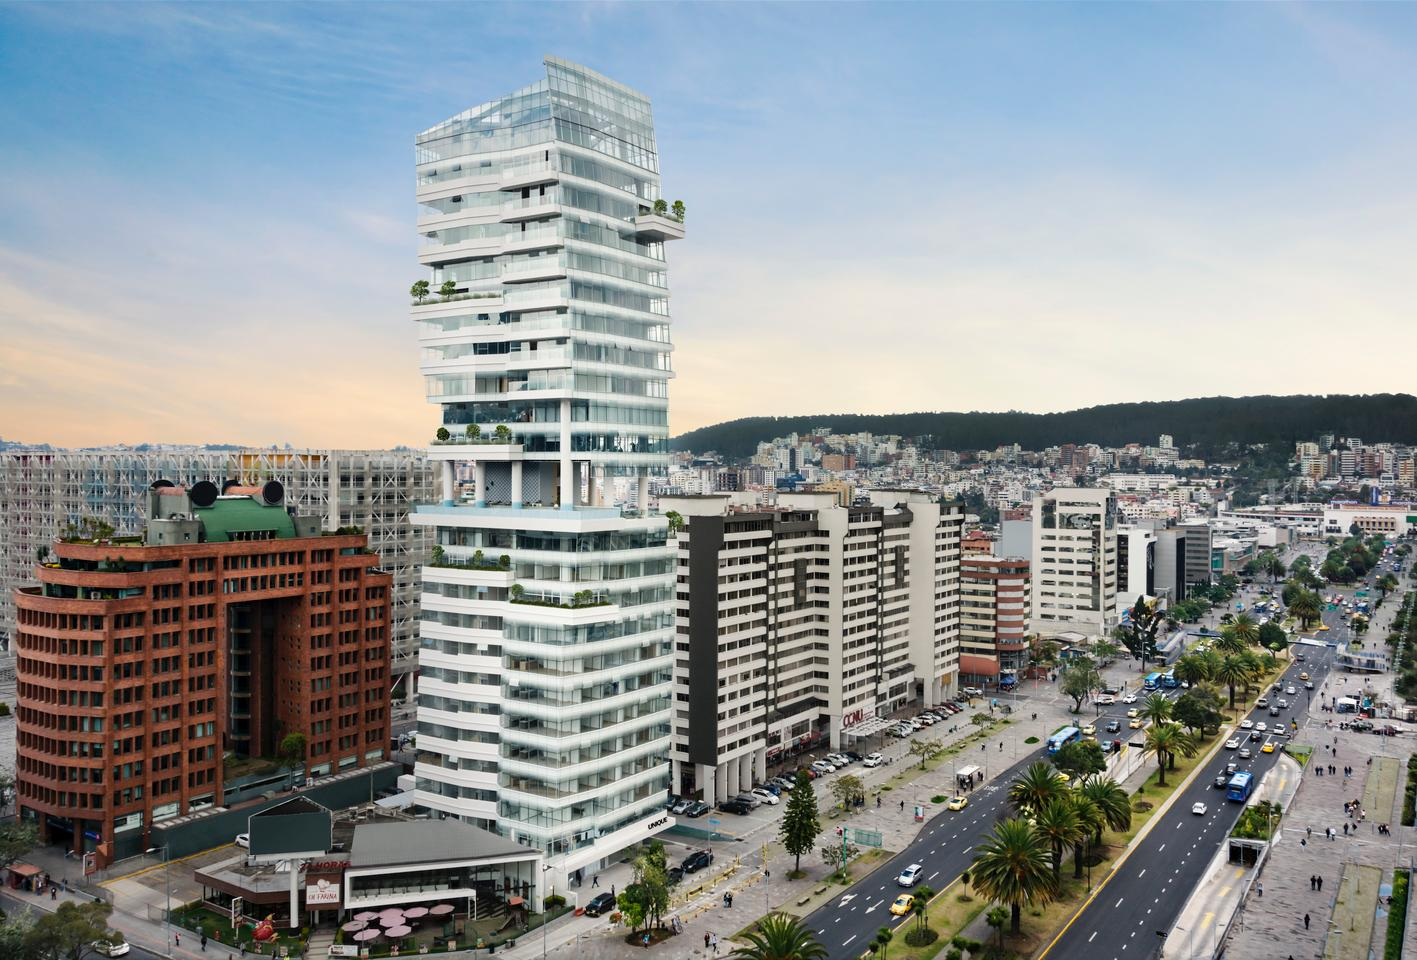 The Unique tower is defined by its three-story gap roughly at its center, which creates an open-air space for residents to relax and socialize